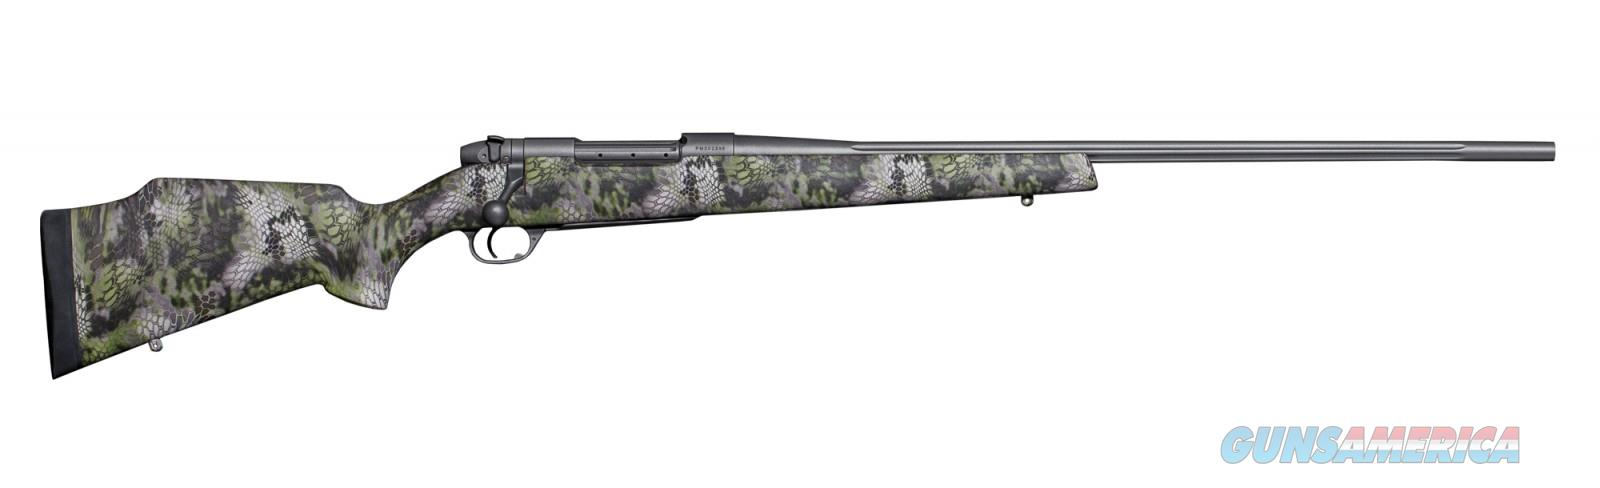 "Weatherby Mark V Kryptek Altitude 6.5 Creed 22"" Tungsten Gray MALS65CMR2O   Guns > Rifles > Weatherby Rifles > Sporting"